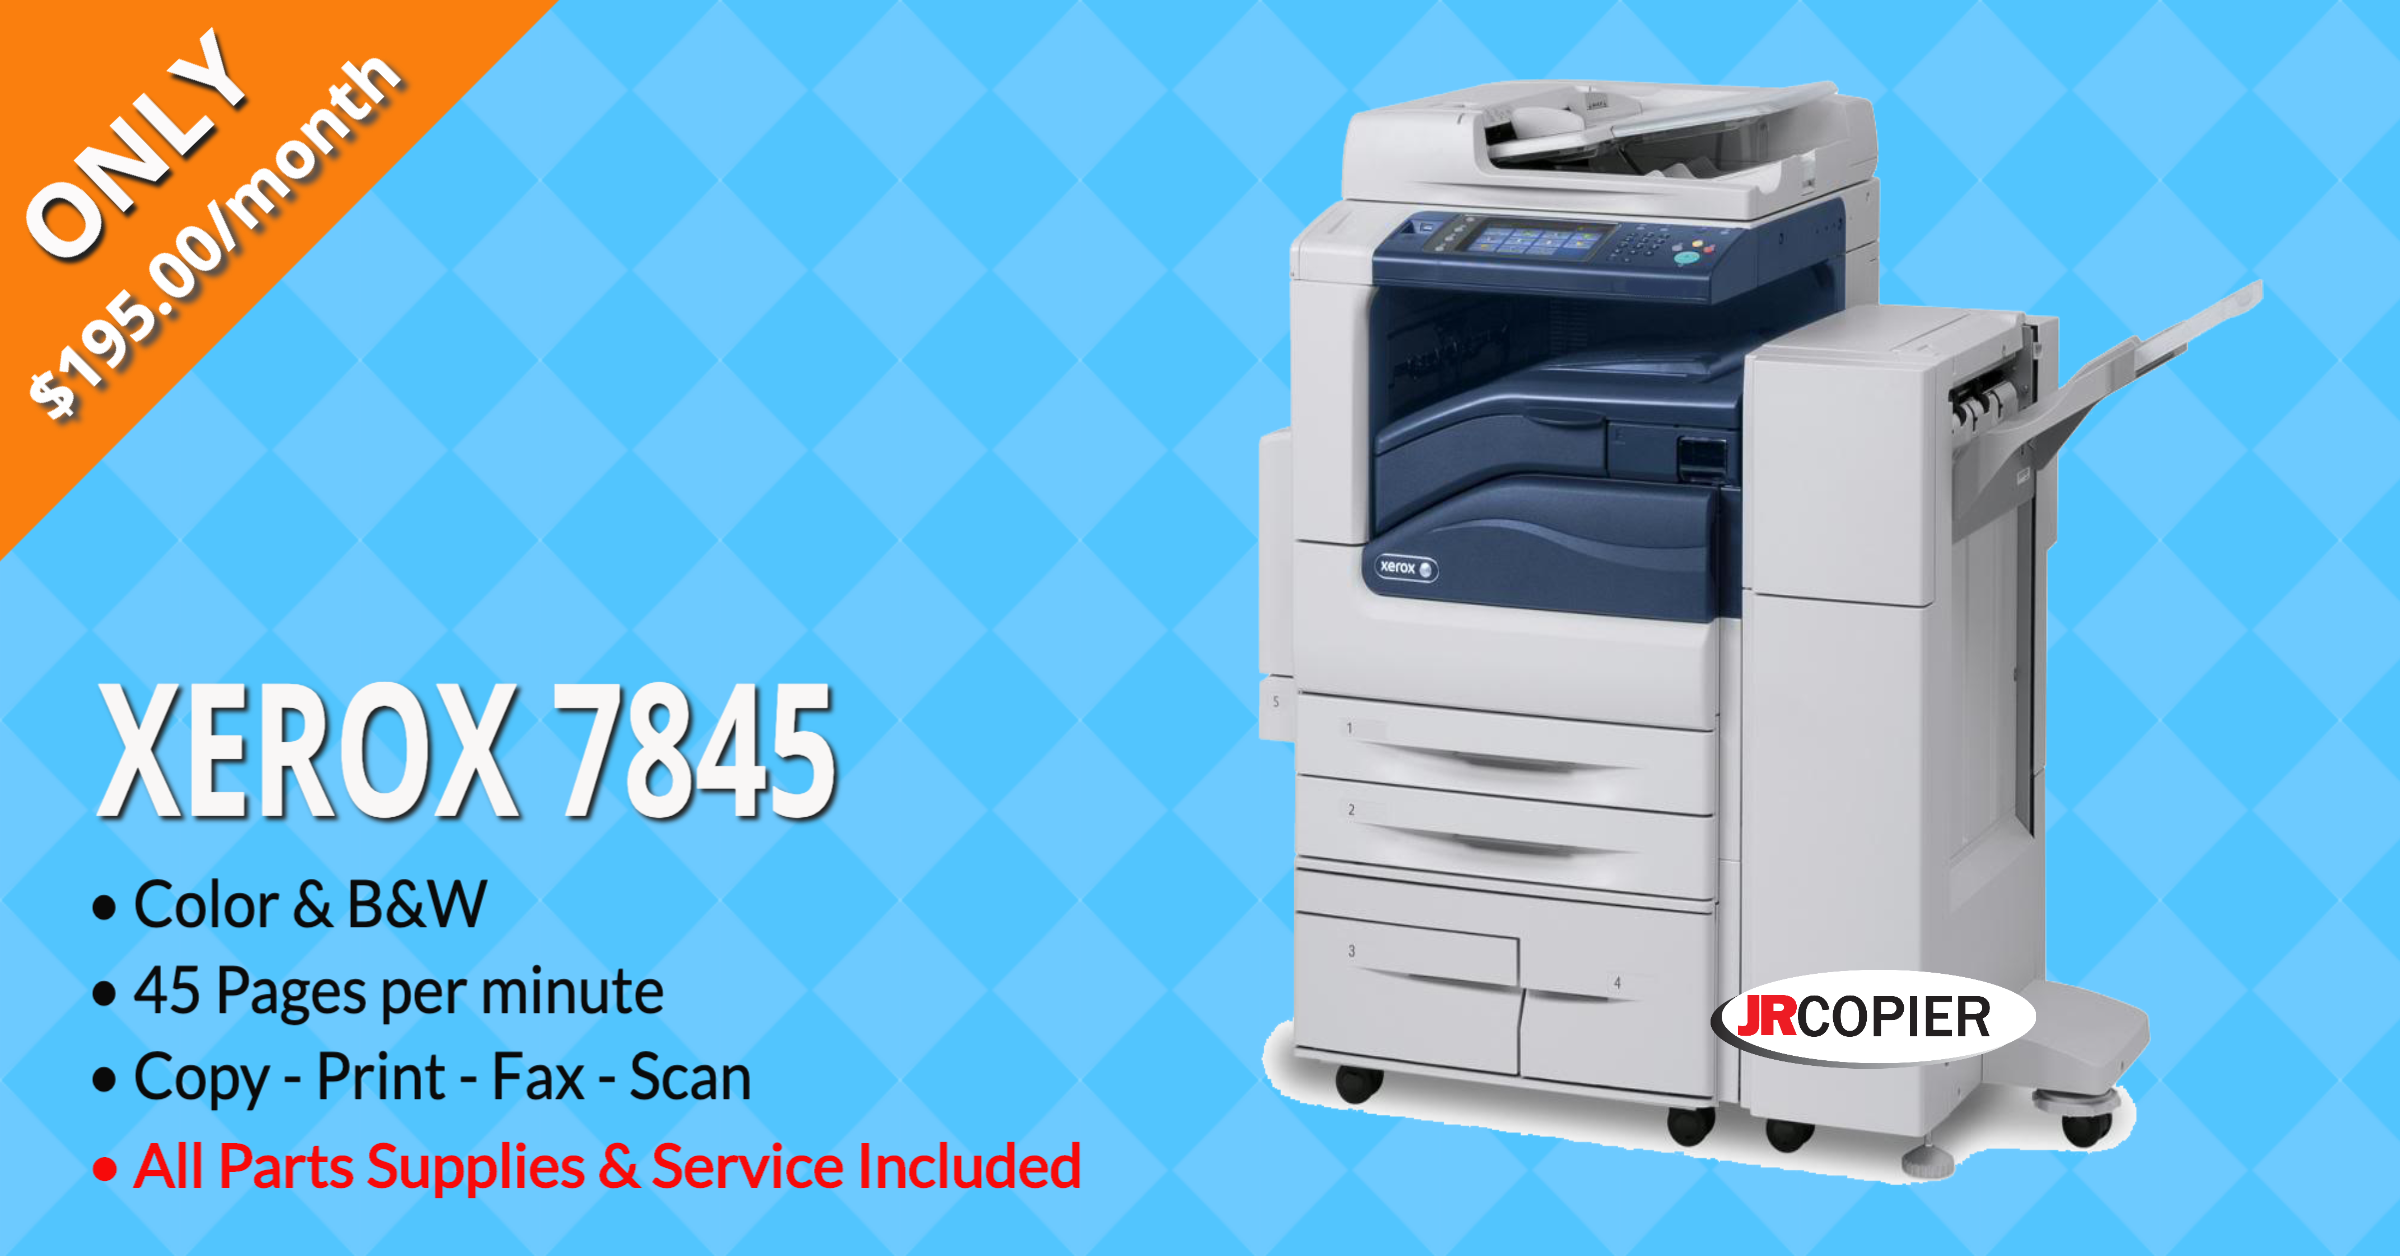 Printer Rental Services 20723